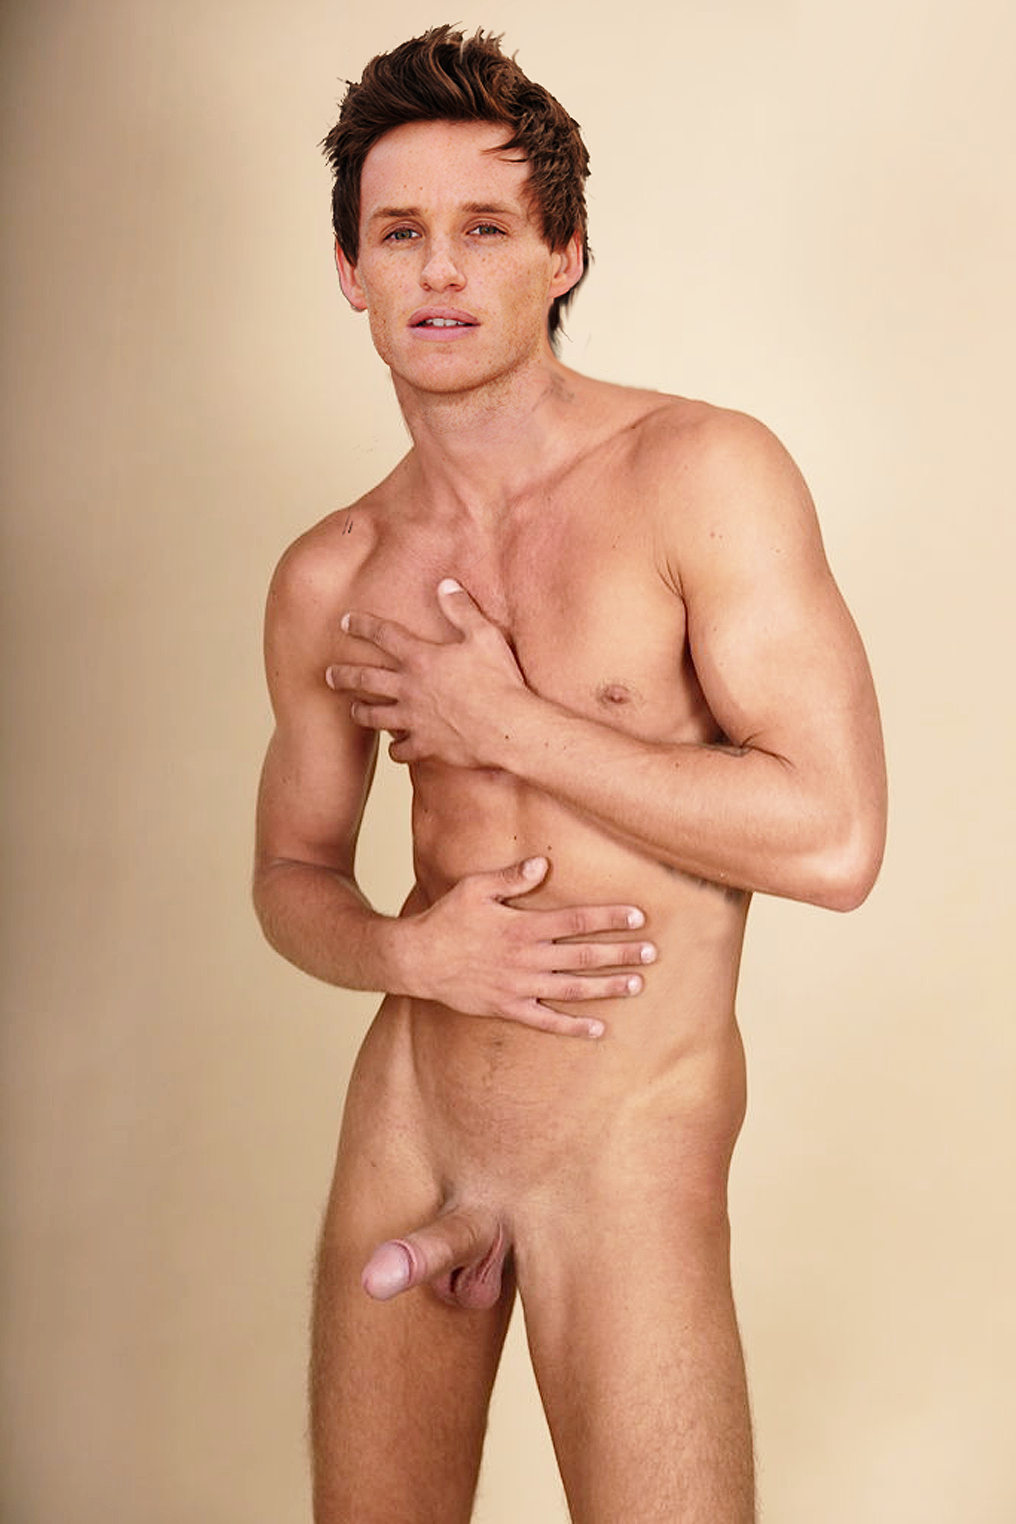 Jolie hot young male celebrities nude adoption